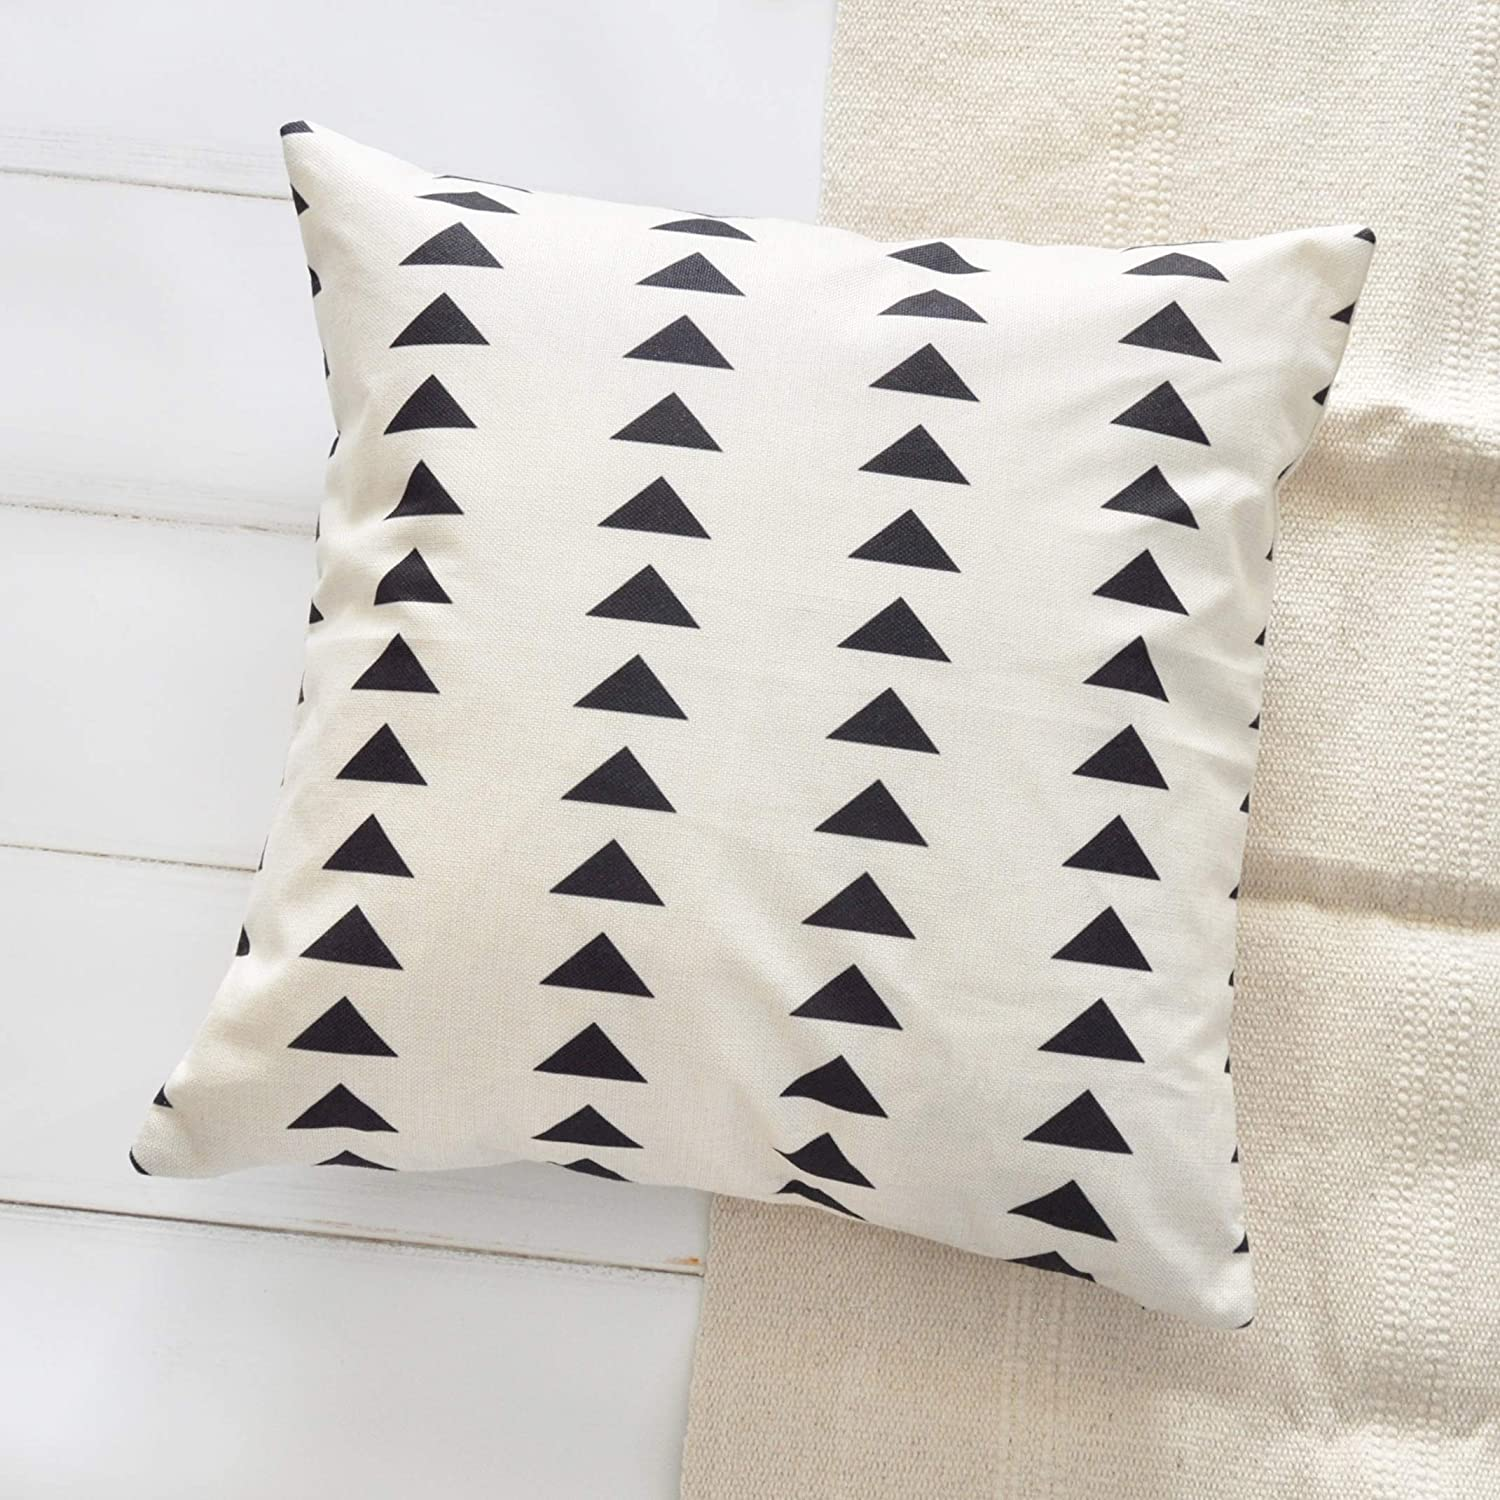 PANDICORN Set of 2 Boho Black and Cream/Off White Pillow Covers for Home Décor, African Mudcloth Throw Pillow Cases for Couch Sofa, Geometric Black Triangle, 18 x 18 Inch